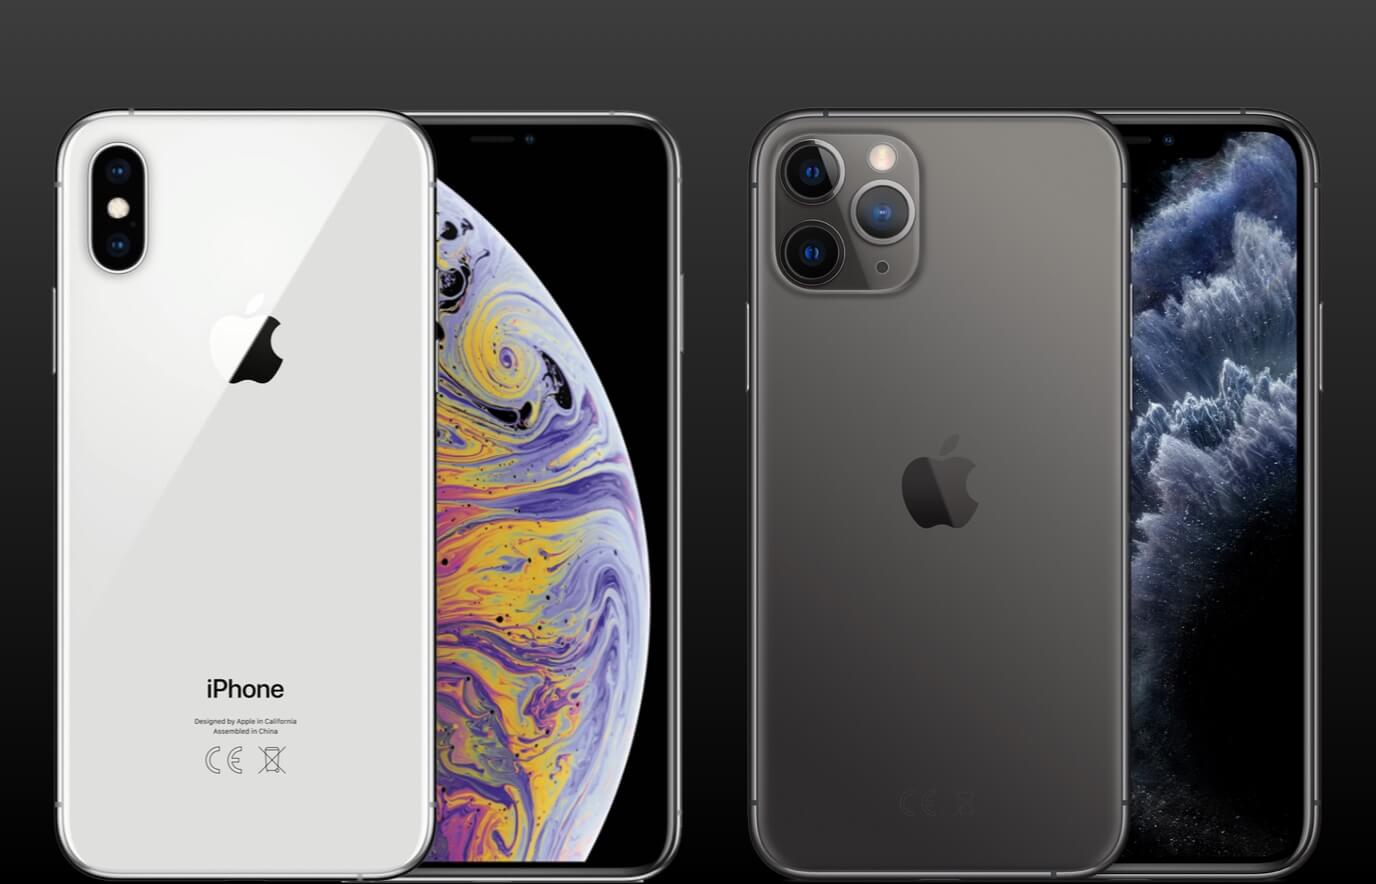 iPhone XS vs iPhone 11 Pro